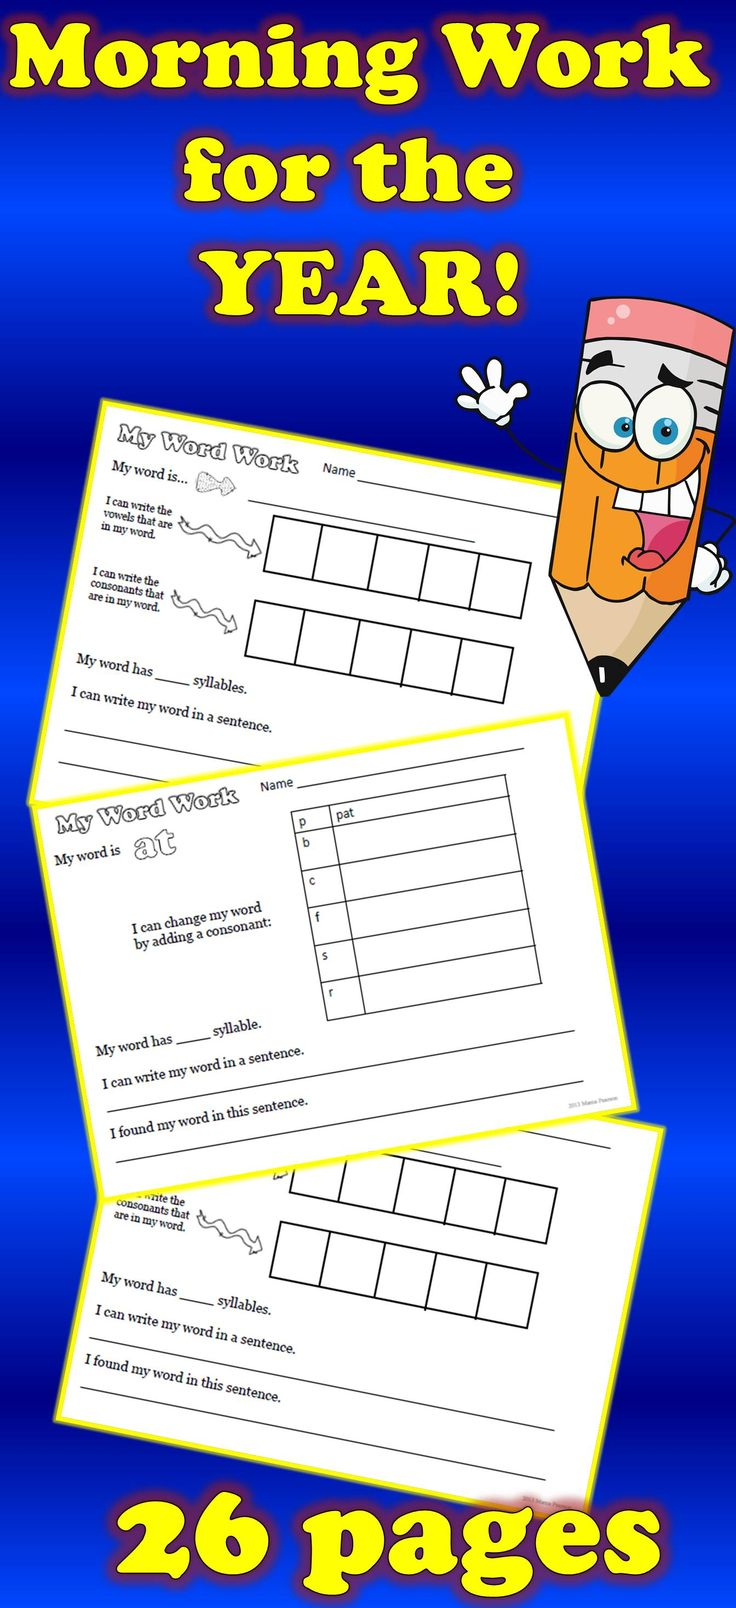 Worksheet Spelling On Line 1000 images about 3rd grade spelling on pinterest homework daily use sheets for morning work centers or bell ringers these can